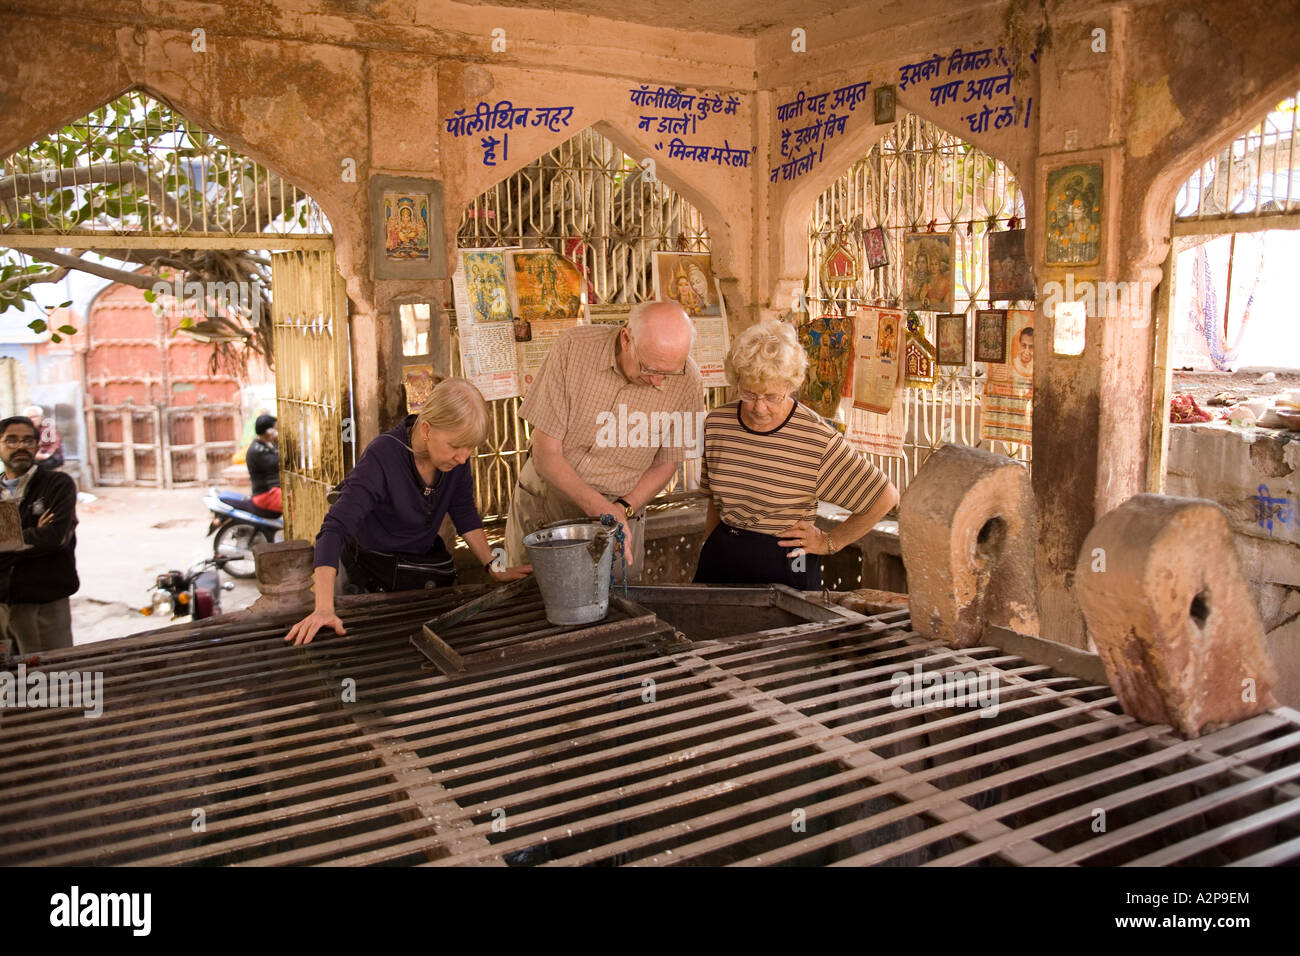 India Rajasthan Jodhpur old city older western visitors in covered well Stock Photo